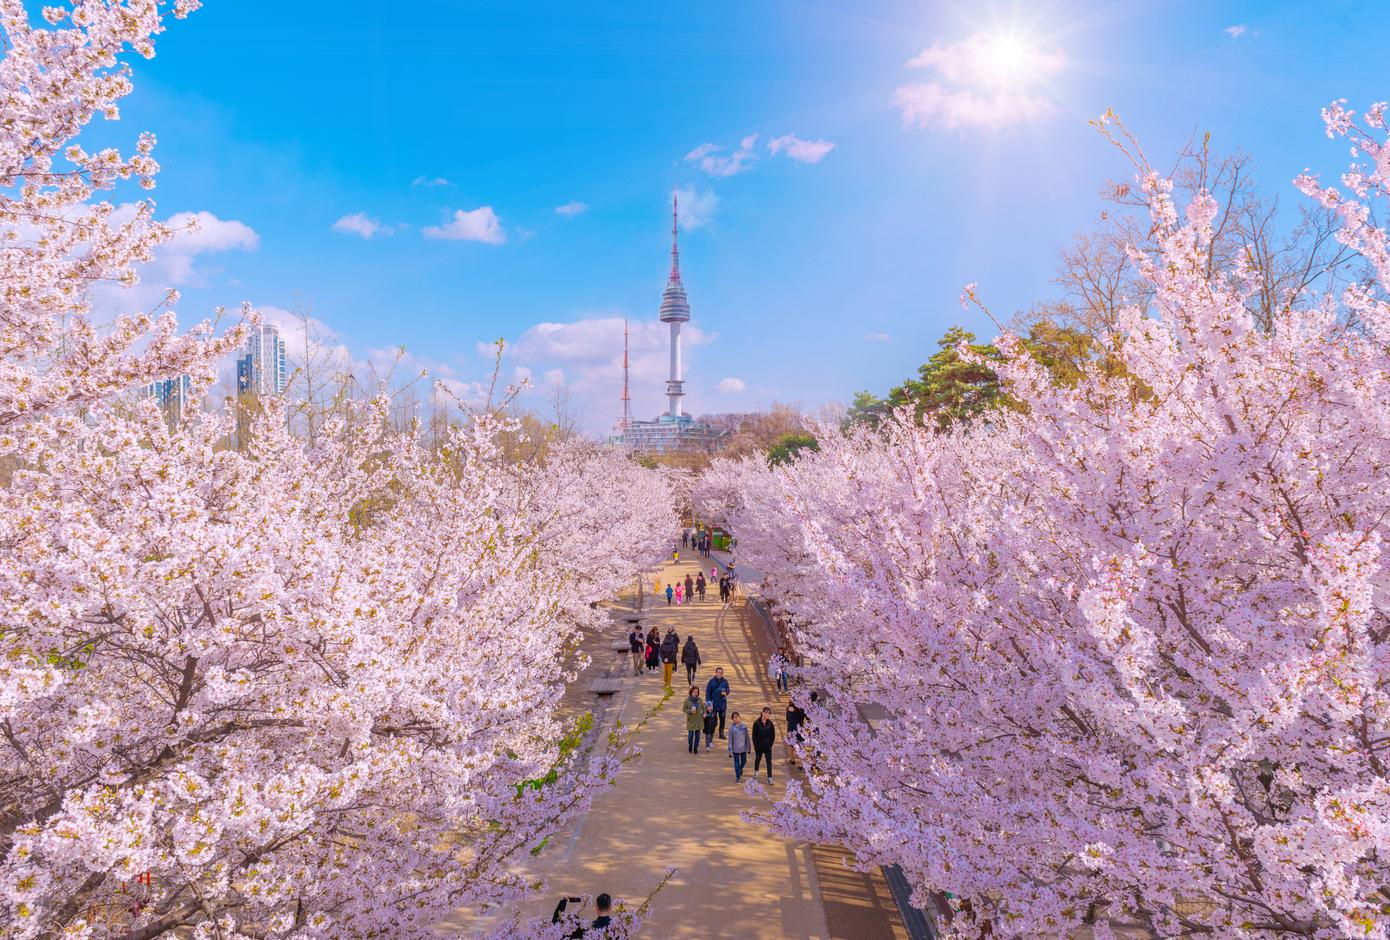 Cherry blossom trees at the Seoul Forest Park in Seoul, South Korea.